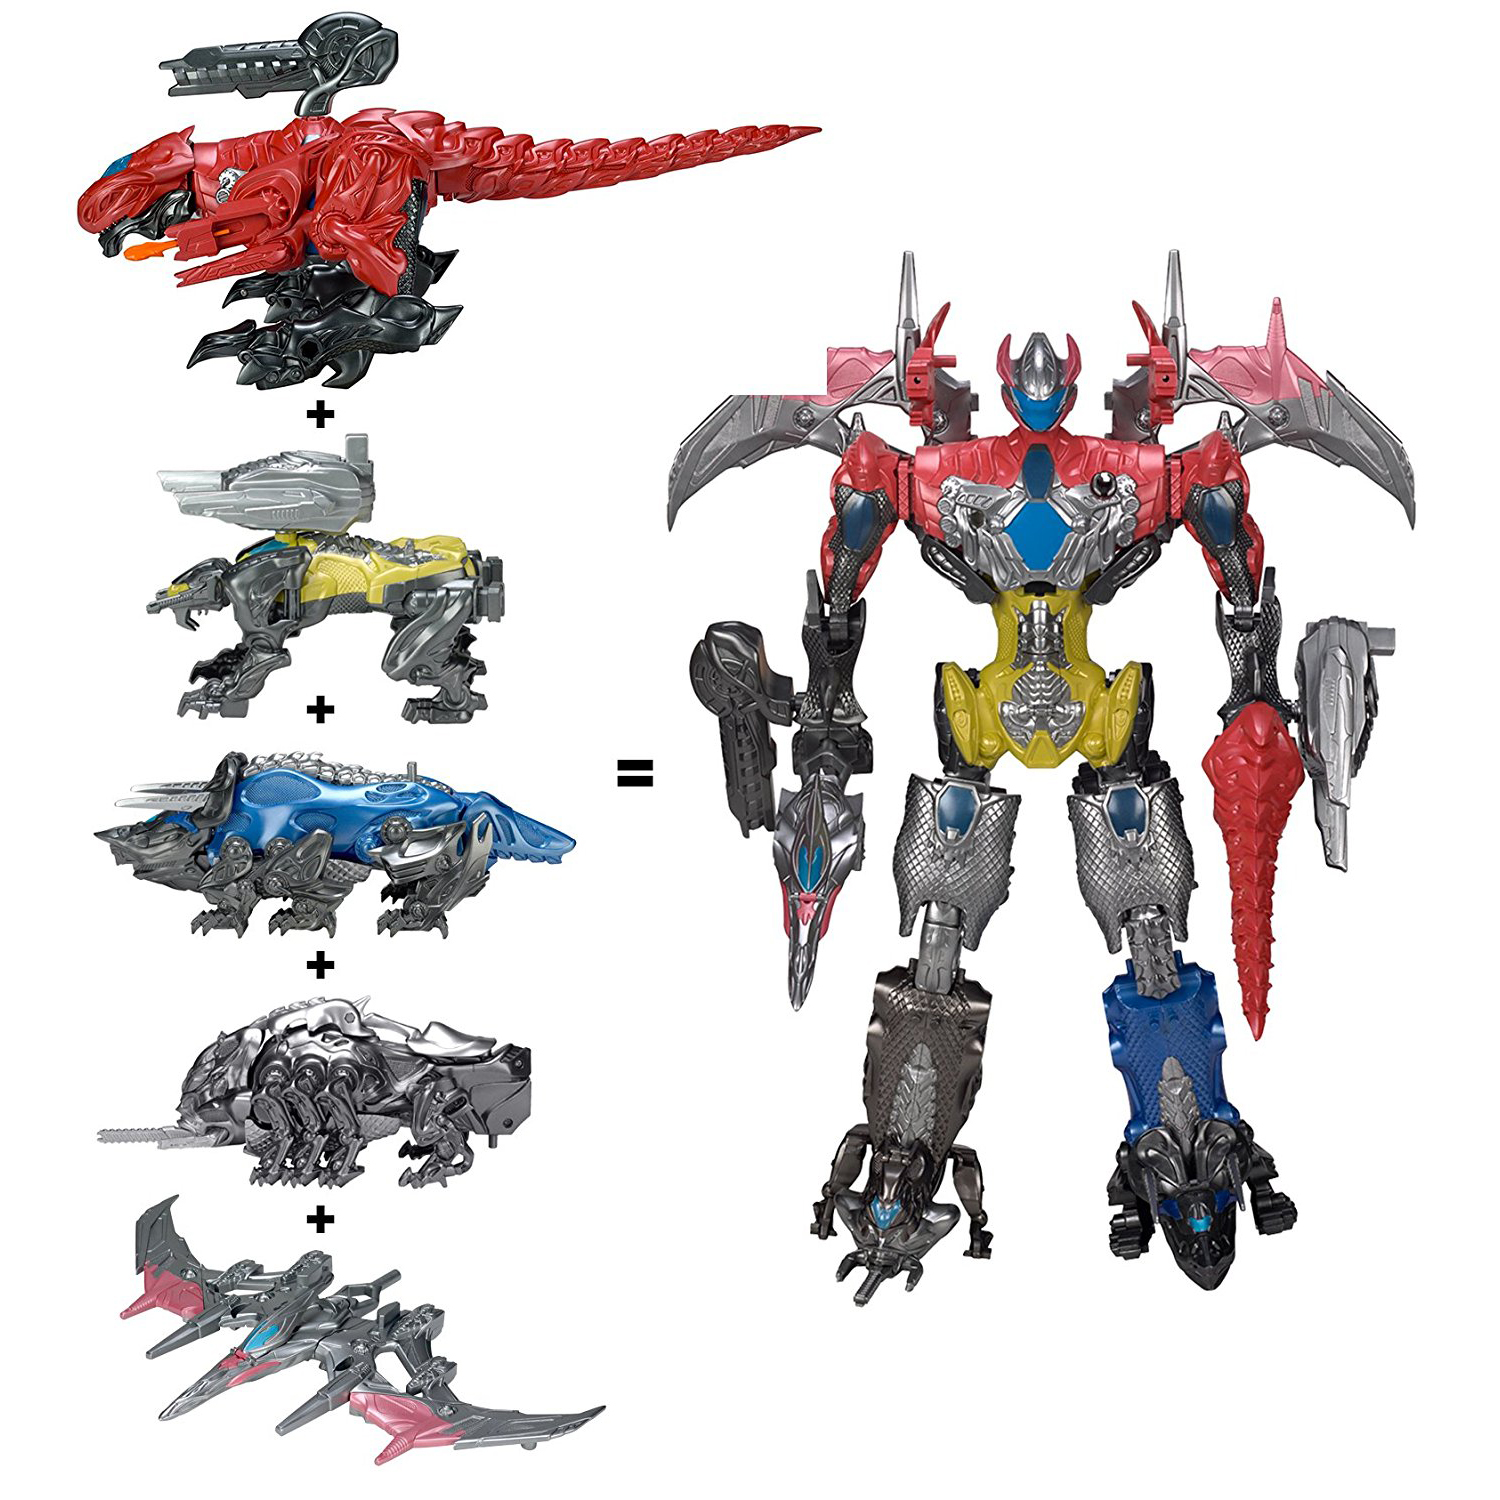 Action Figure Christmas Gifts Doll Toys Powe Ranger Combination Deformation Transformation Dinosaur Warrior Megazord 5 in 1 assembly toys transformation robot dinosaur rangers megazord action figures kids christmas gifts